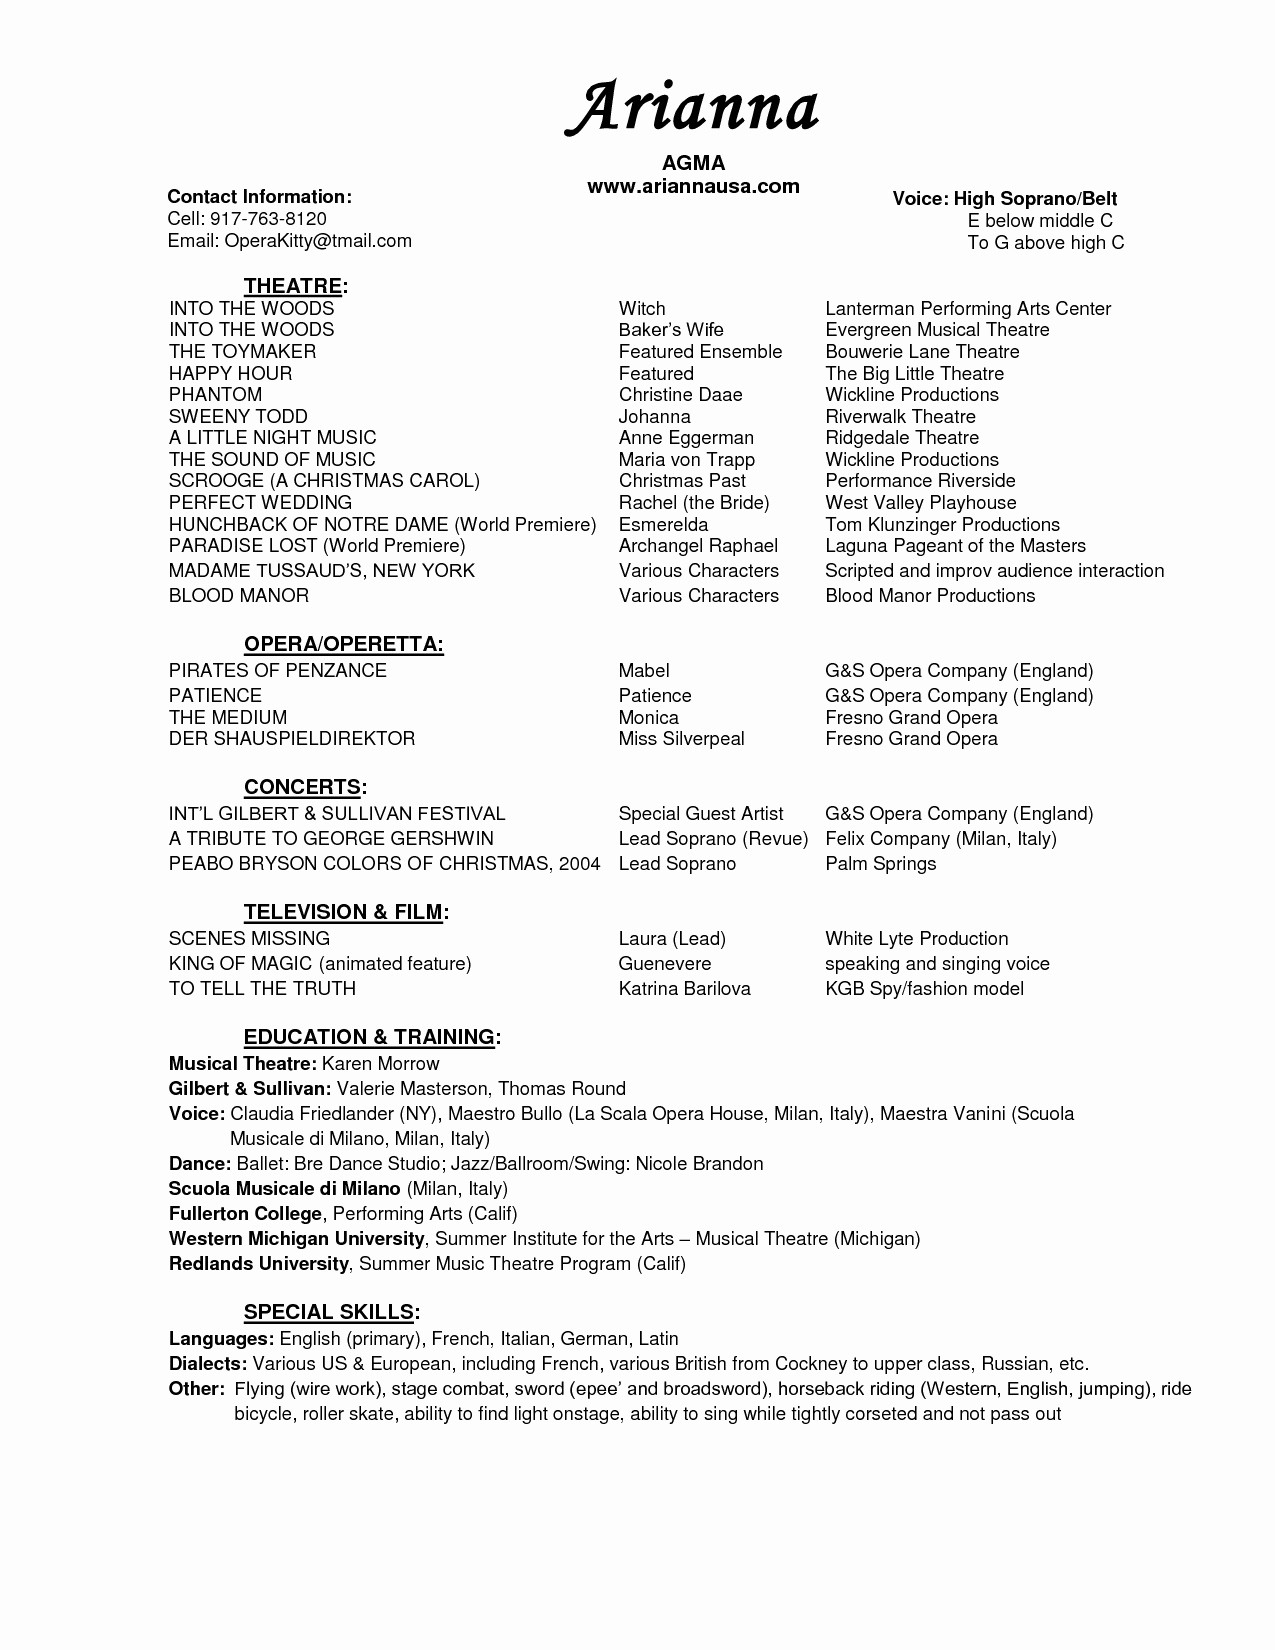 theatrical resume template example-Musicians Resume Template Save Musical Theatre Resume Template Unique Resume Music 0d Wallpapers 49 5-c